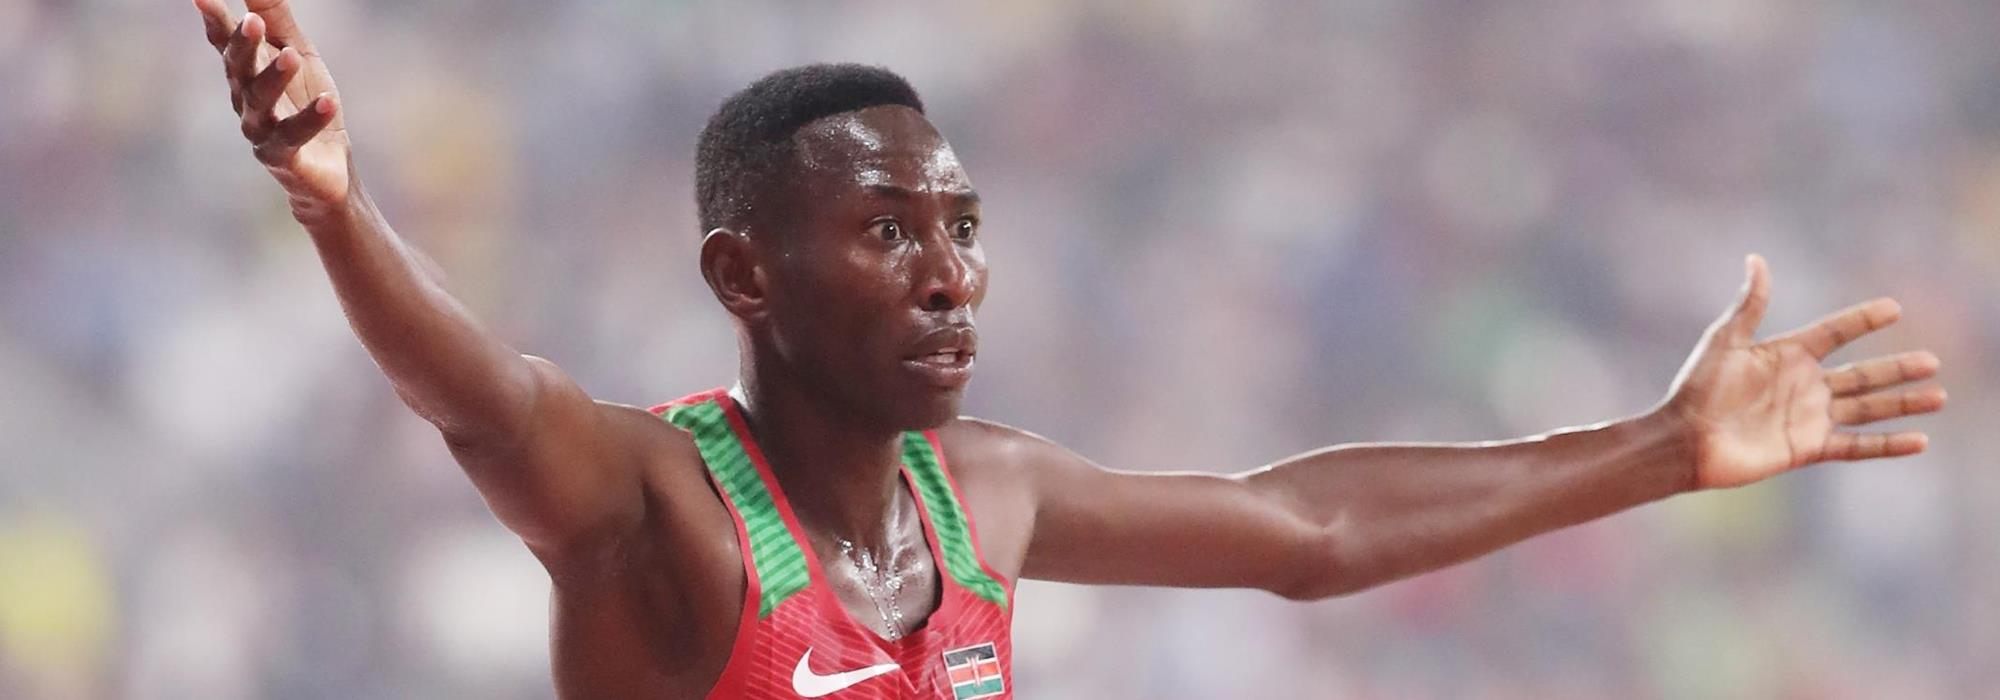 Conseslus Kipruto after winning the steeplechase at the IAAF World Athletics Championships Doha 2019 (Getty Images)